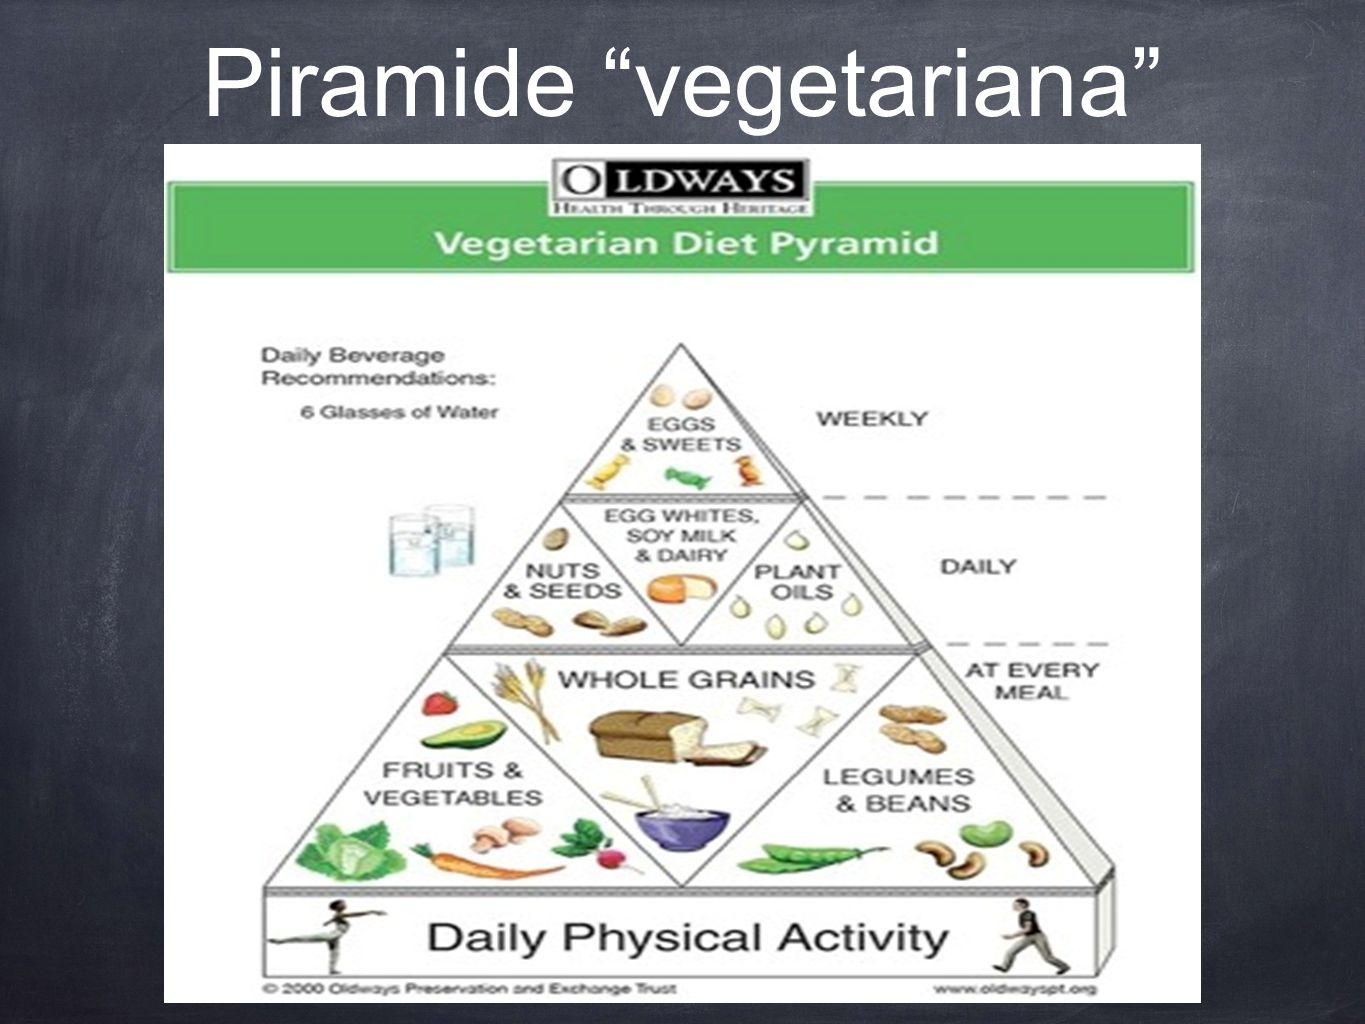 Piramide vegetariana